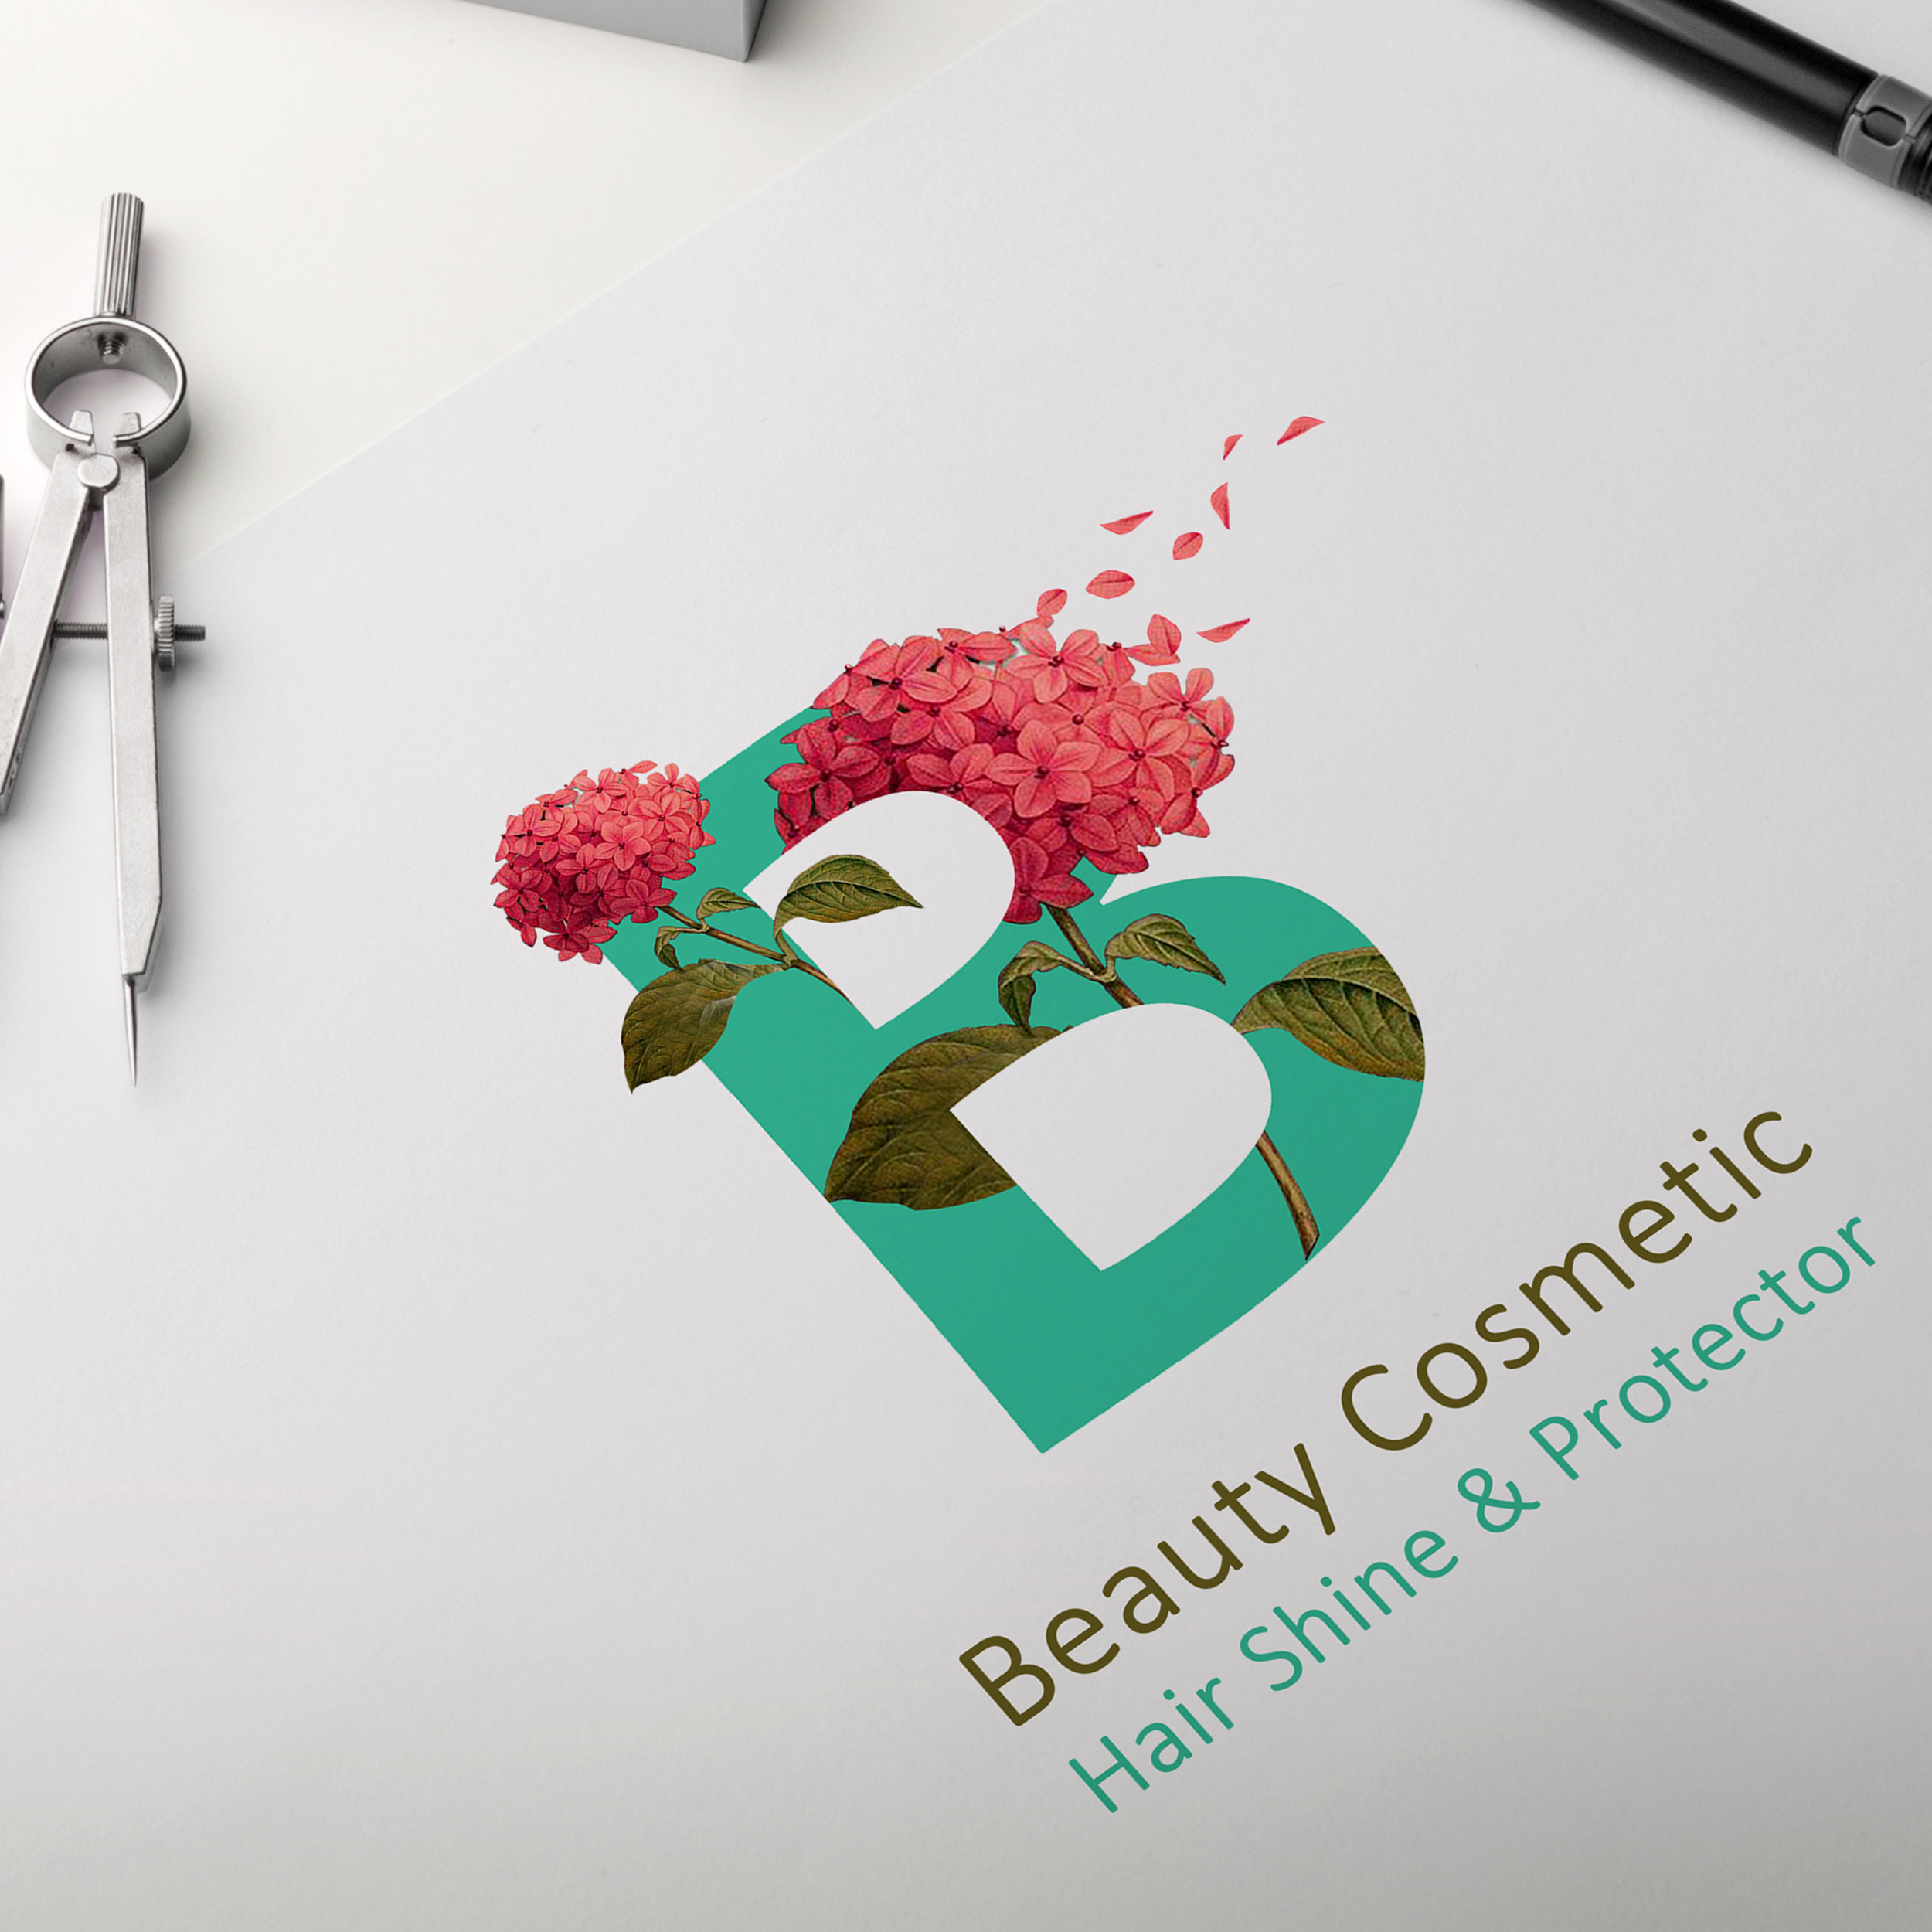 Identity Cooperation for Cosmetic Products